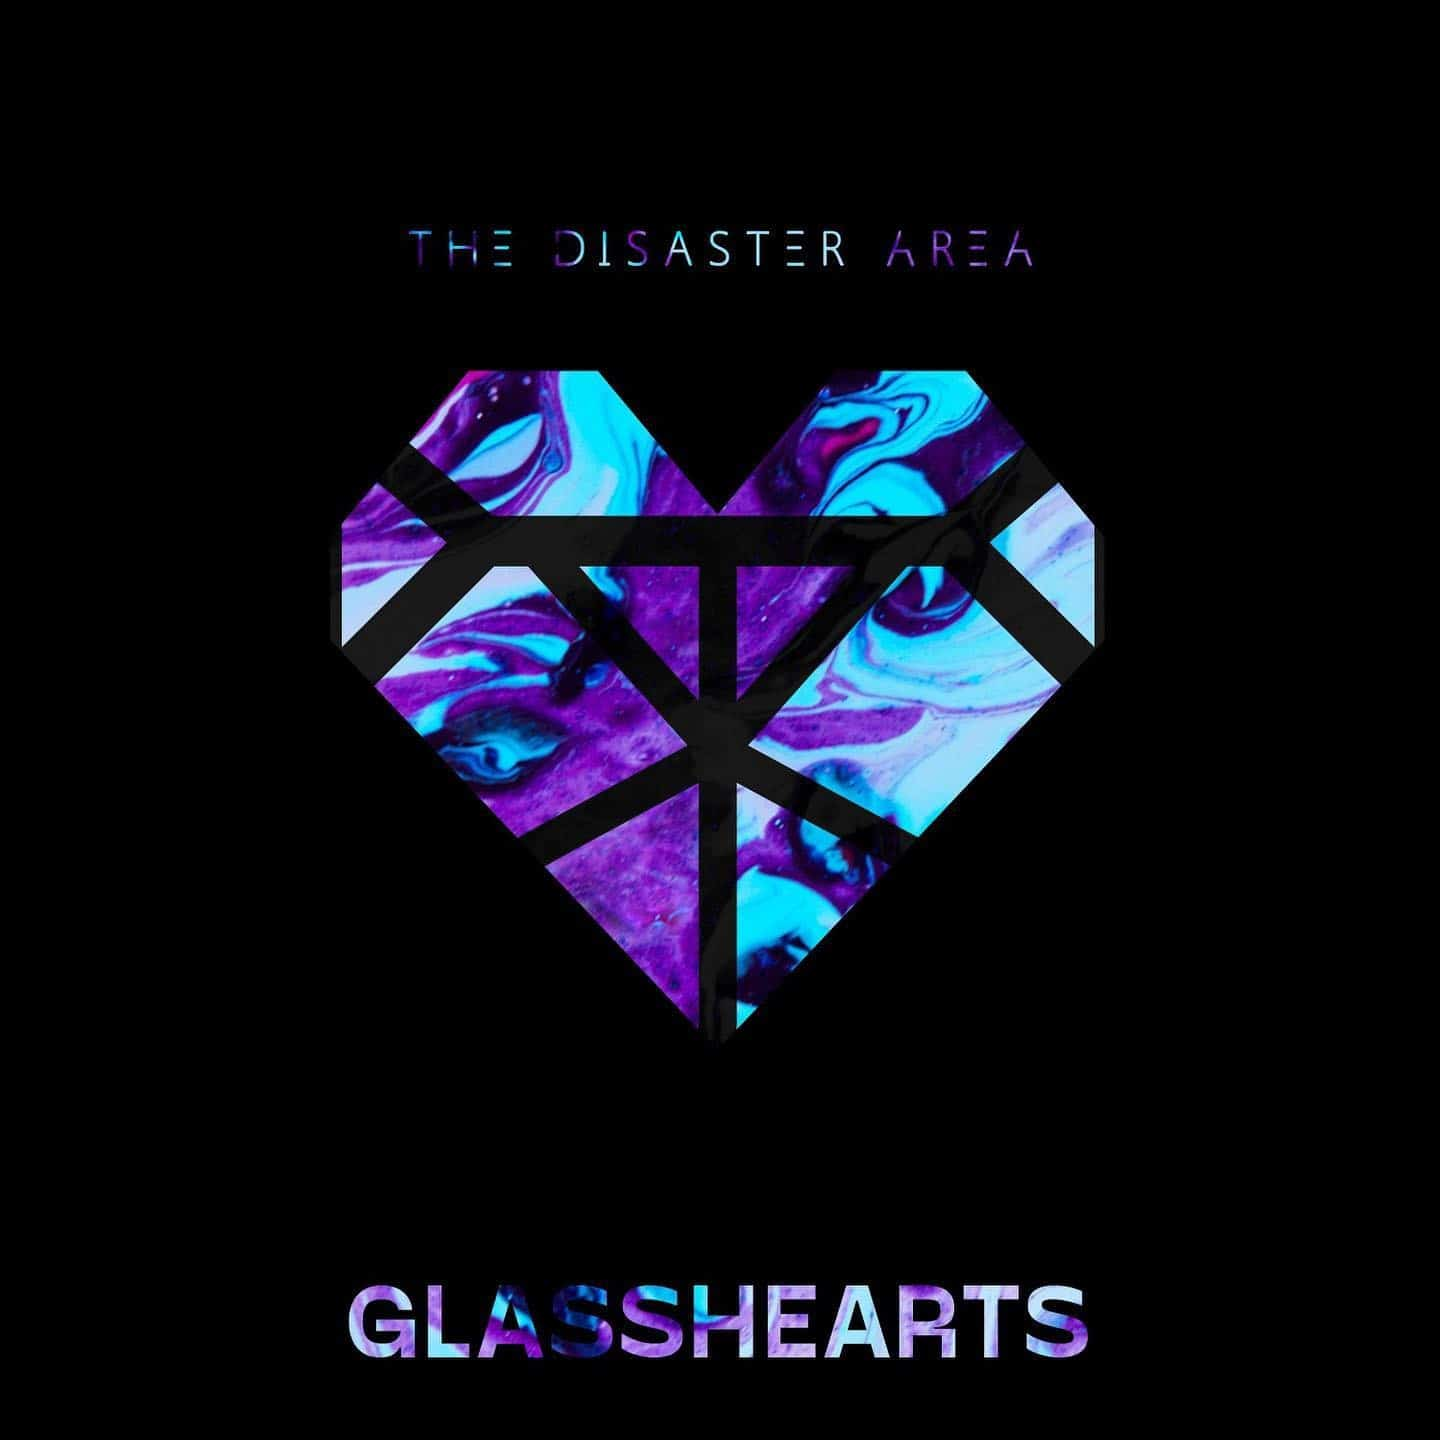 The Disaster Area Glasshearts